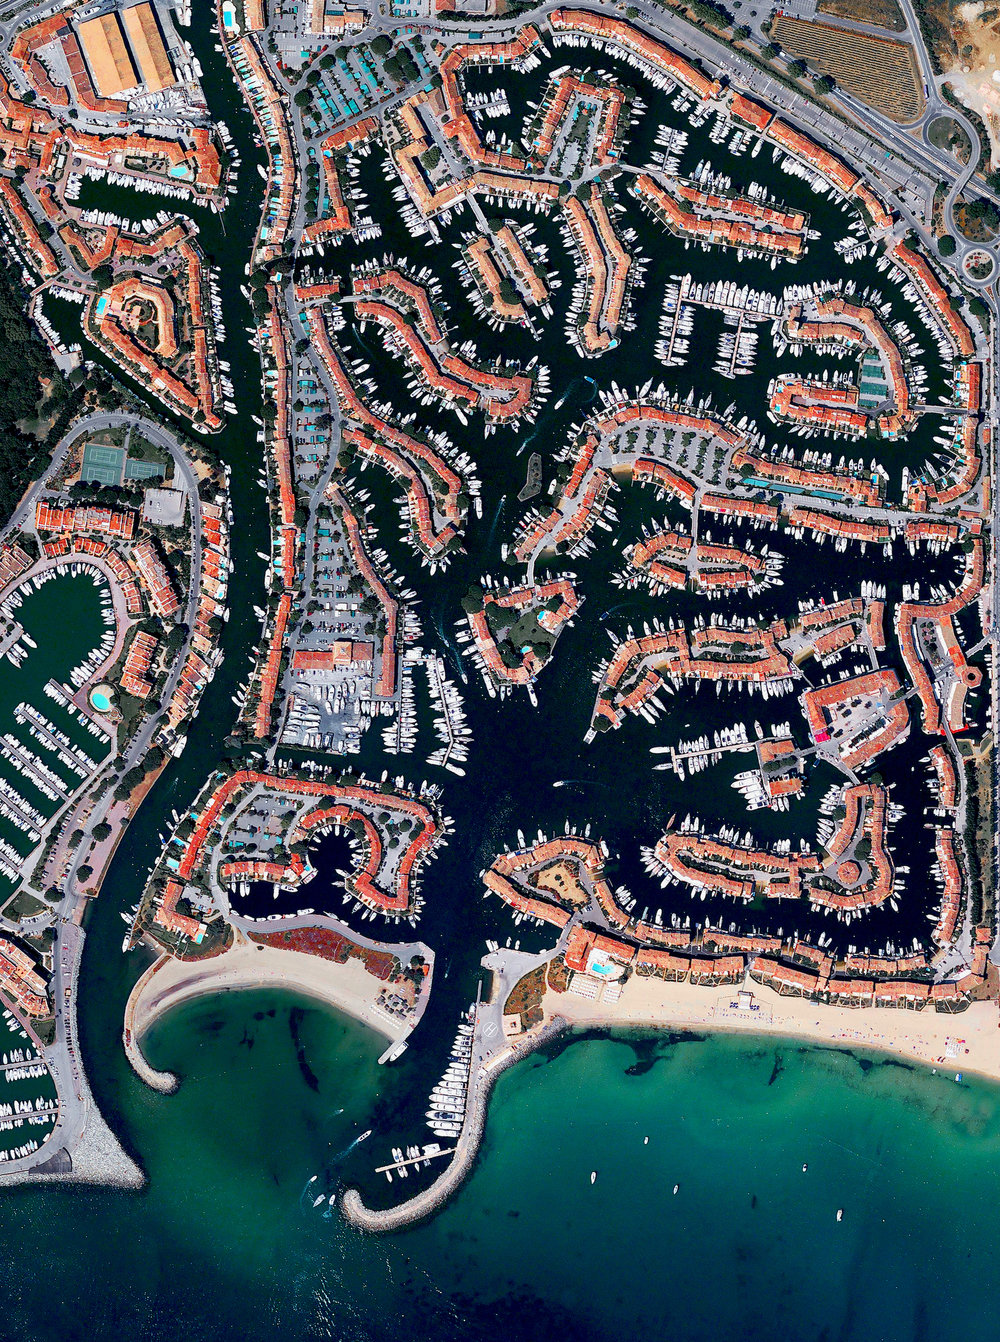 "6/19/2017 Port Grimaud 43°16′20″N 6°34′49″E   Port Grimaud is a seaside town located on the French Riviera by the Gulf of Saint Tropez. The development consists of French ""Fisherman"" style houses built upon channels in a Venetian manner."